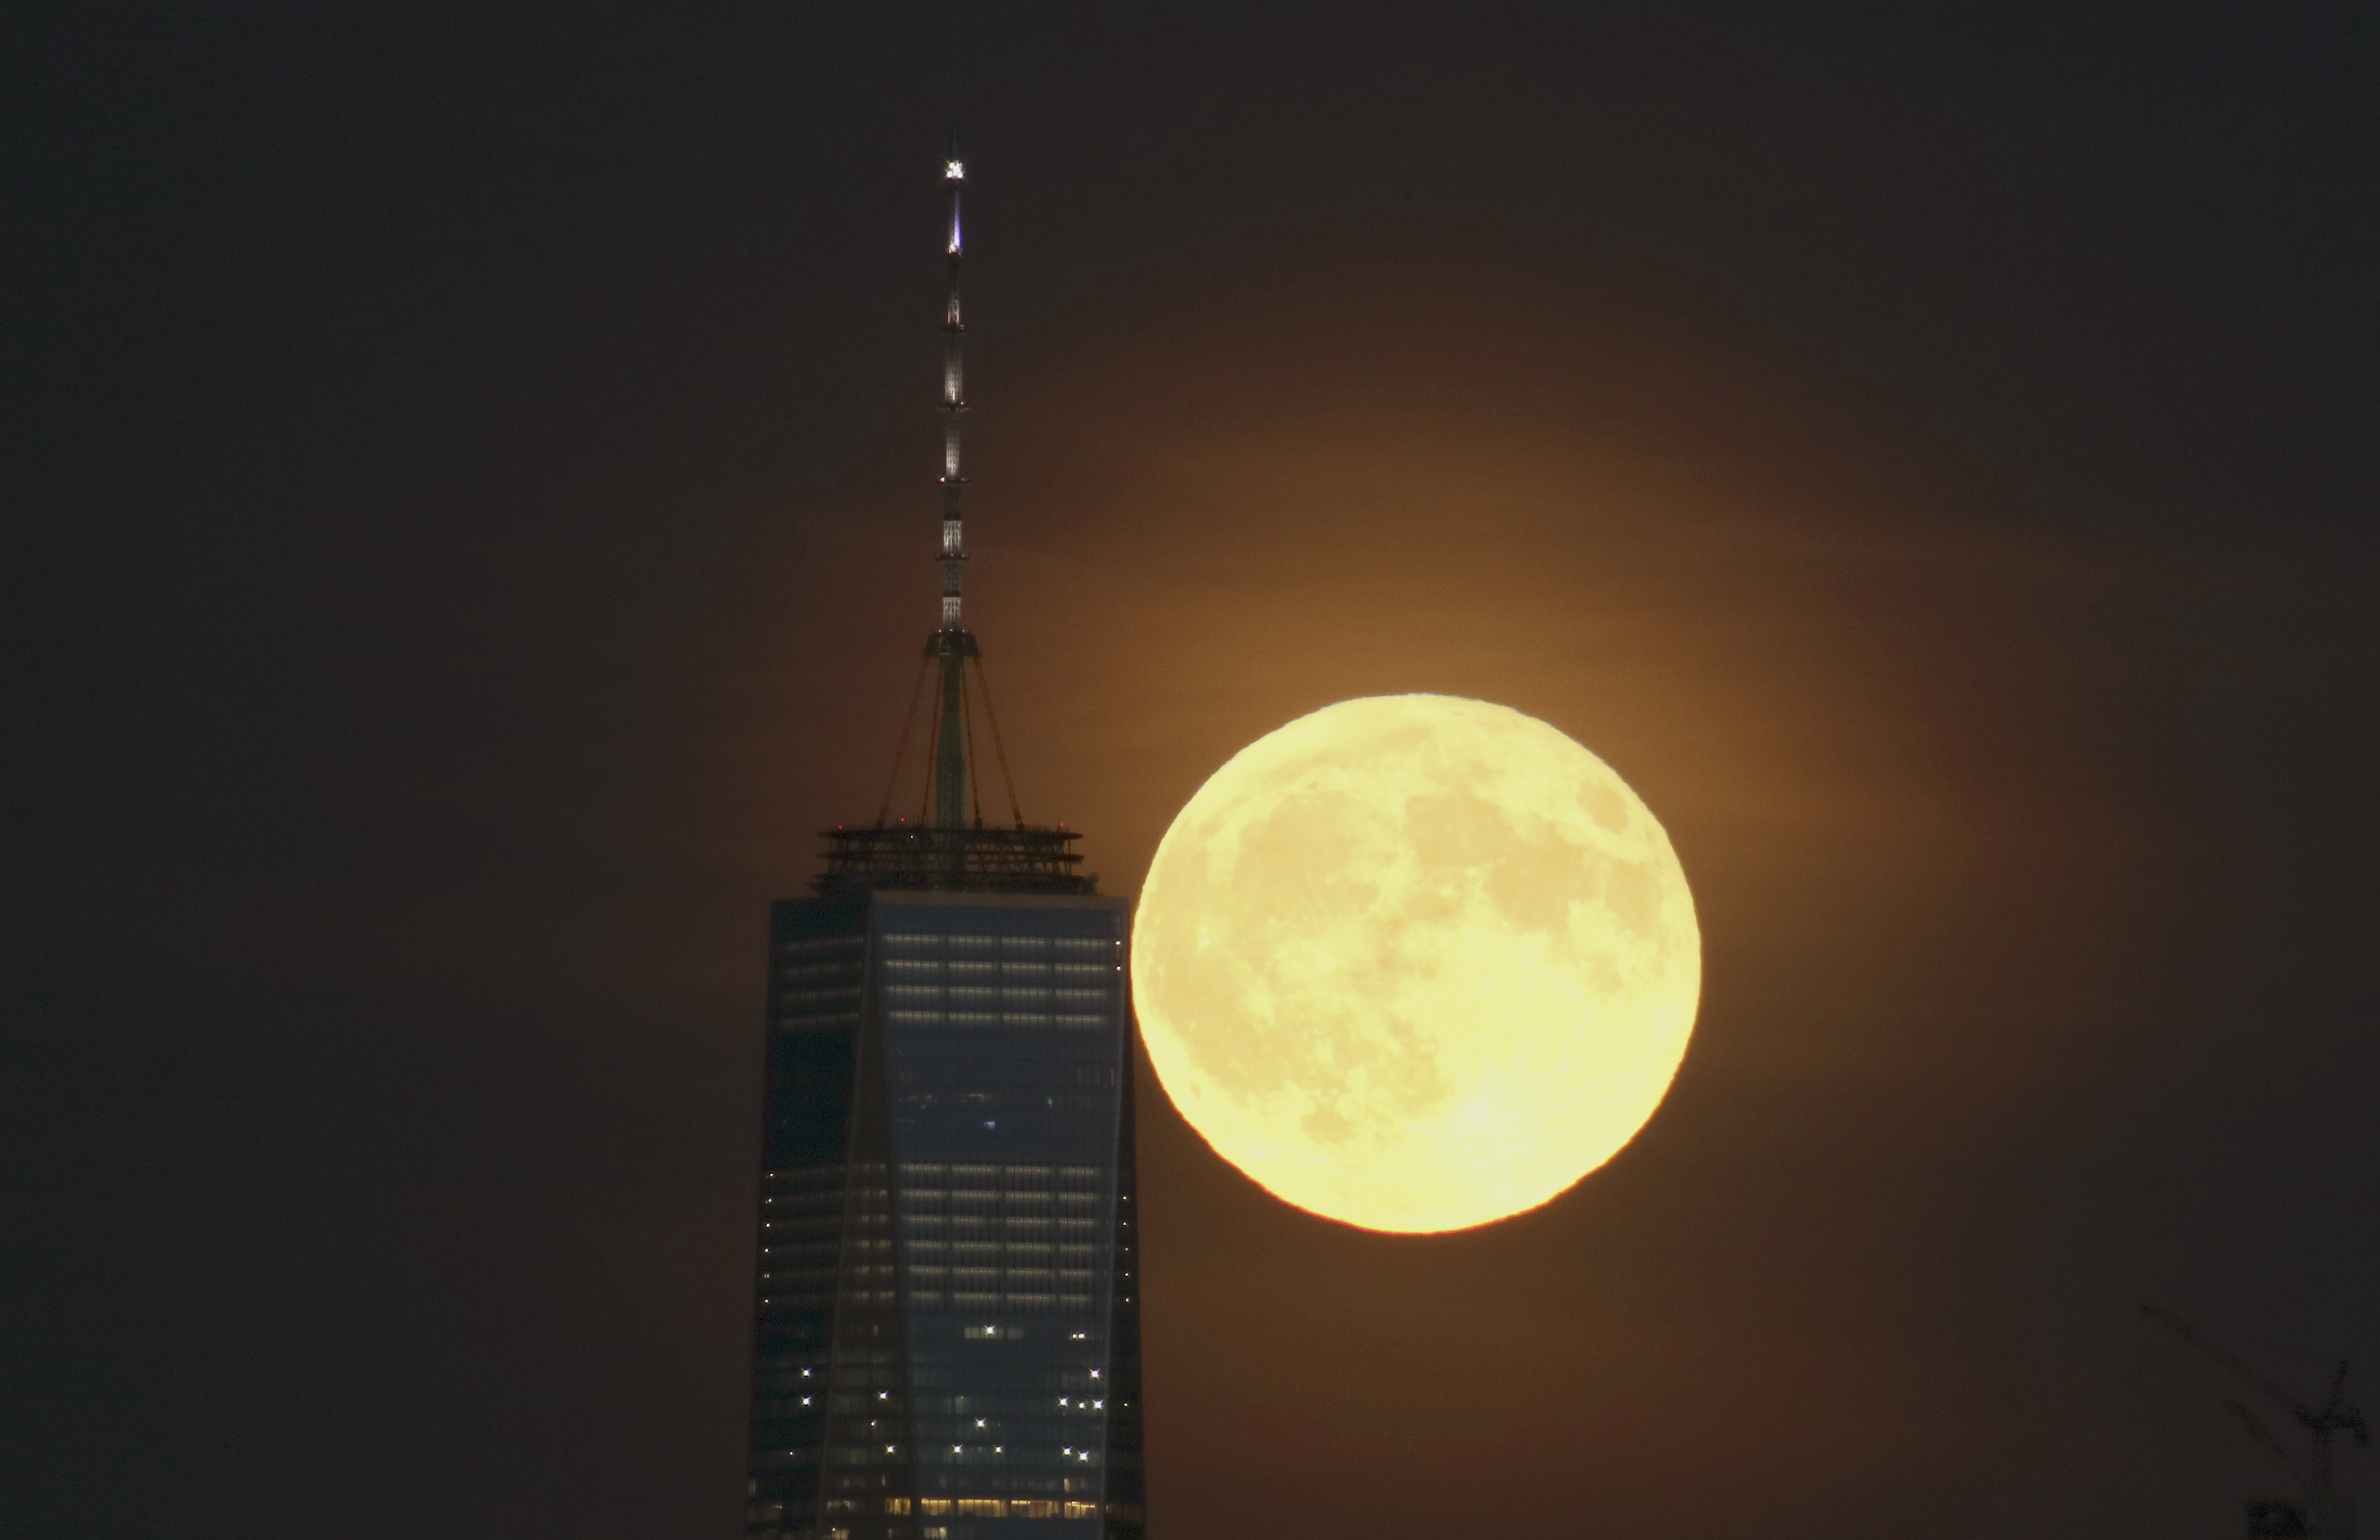 A full harvest moon rises behind Lower Manhattan and One World Trade Center in New York City on September 16, 2016 as seen from Newark, NJ.